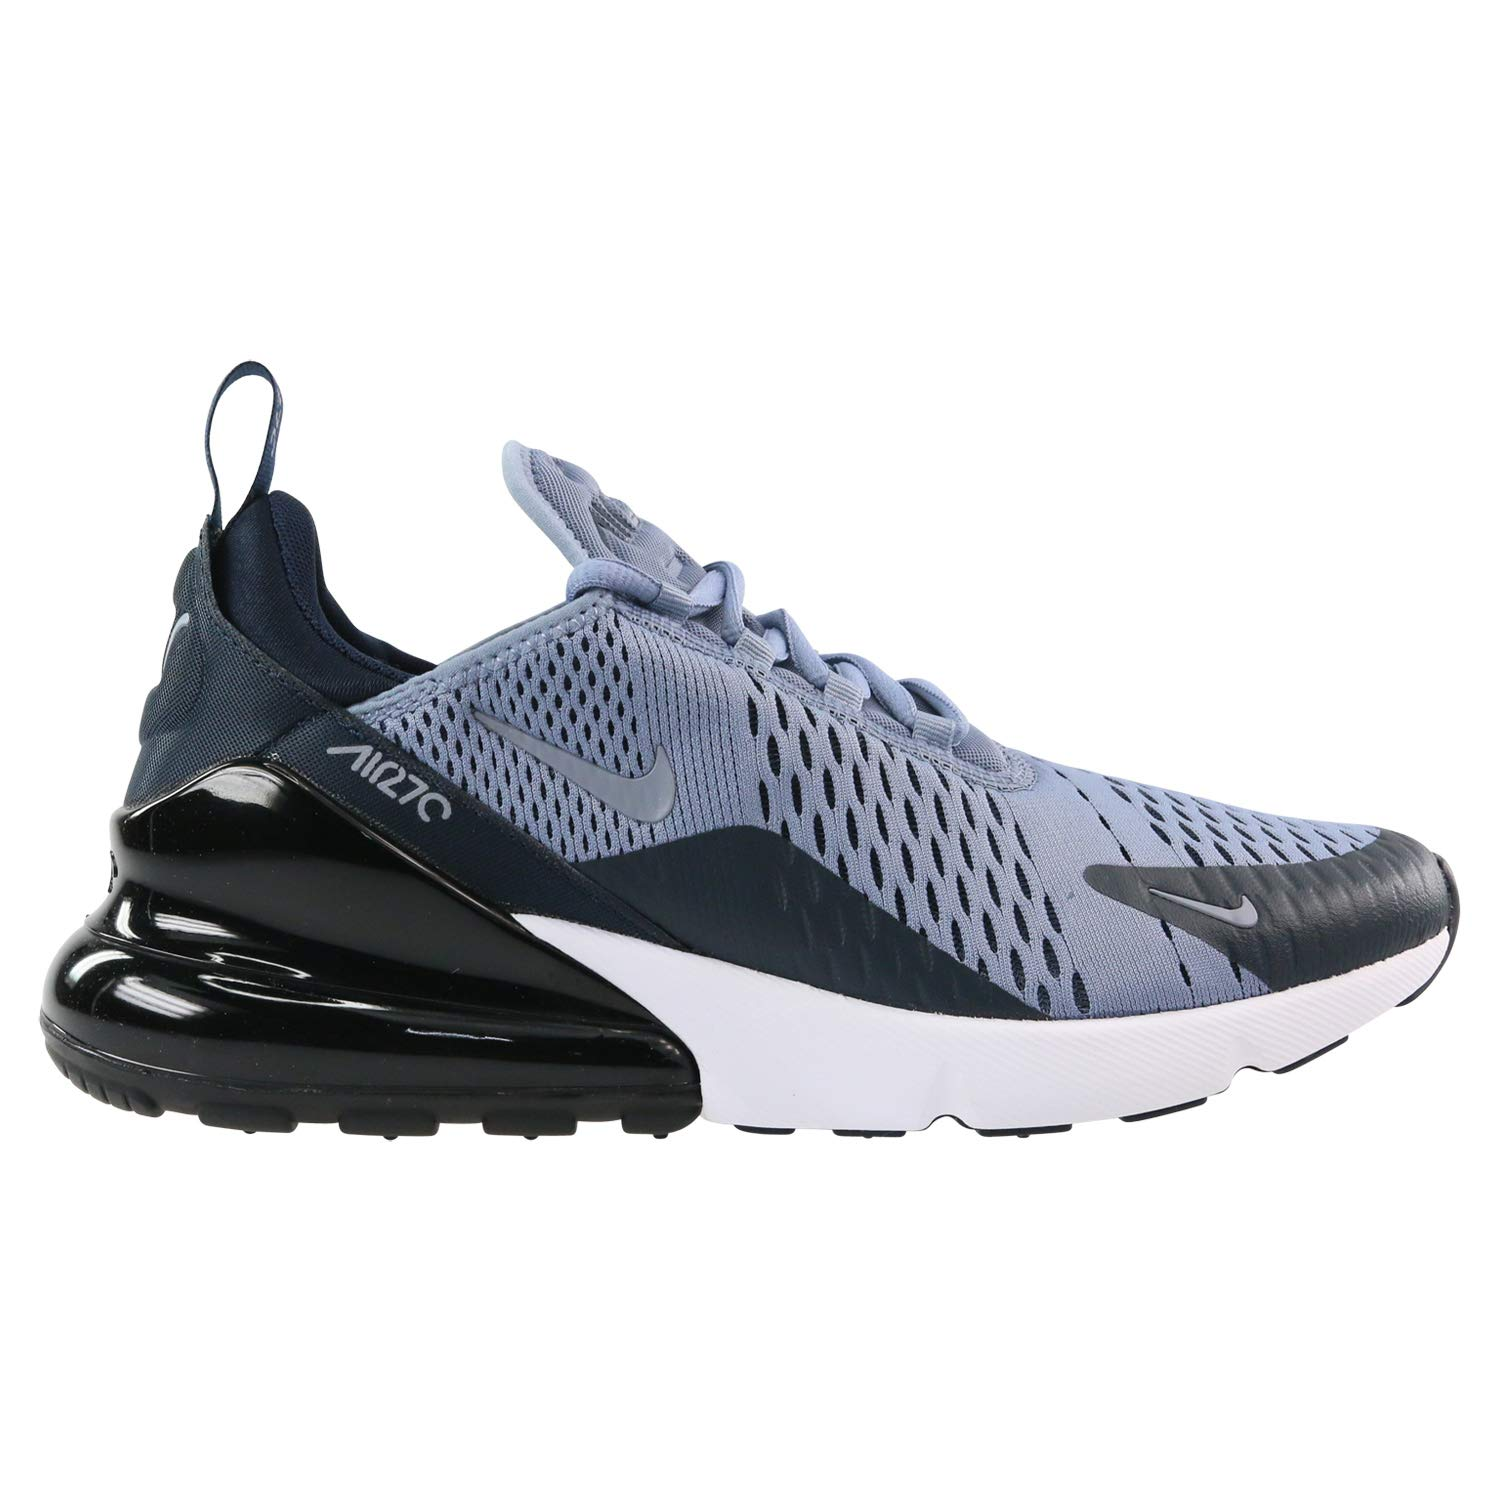 reputable site 5778b f6dcc Galleon - Nike Air Max 270 Mens Ah8050-403 Size 6